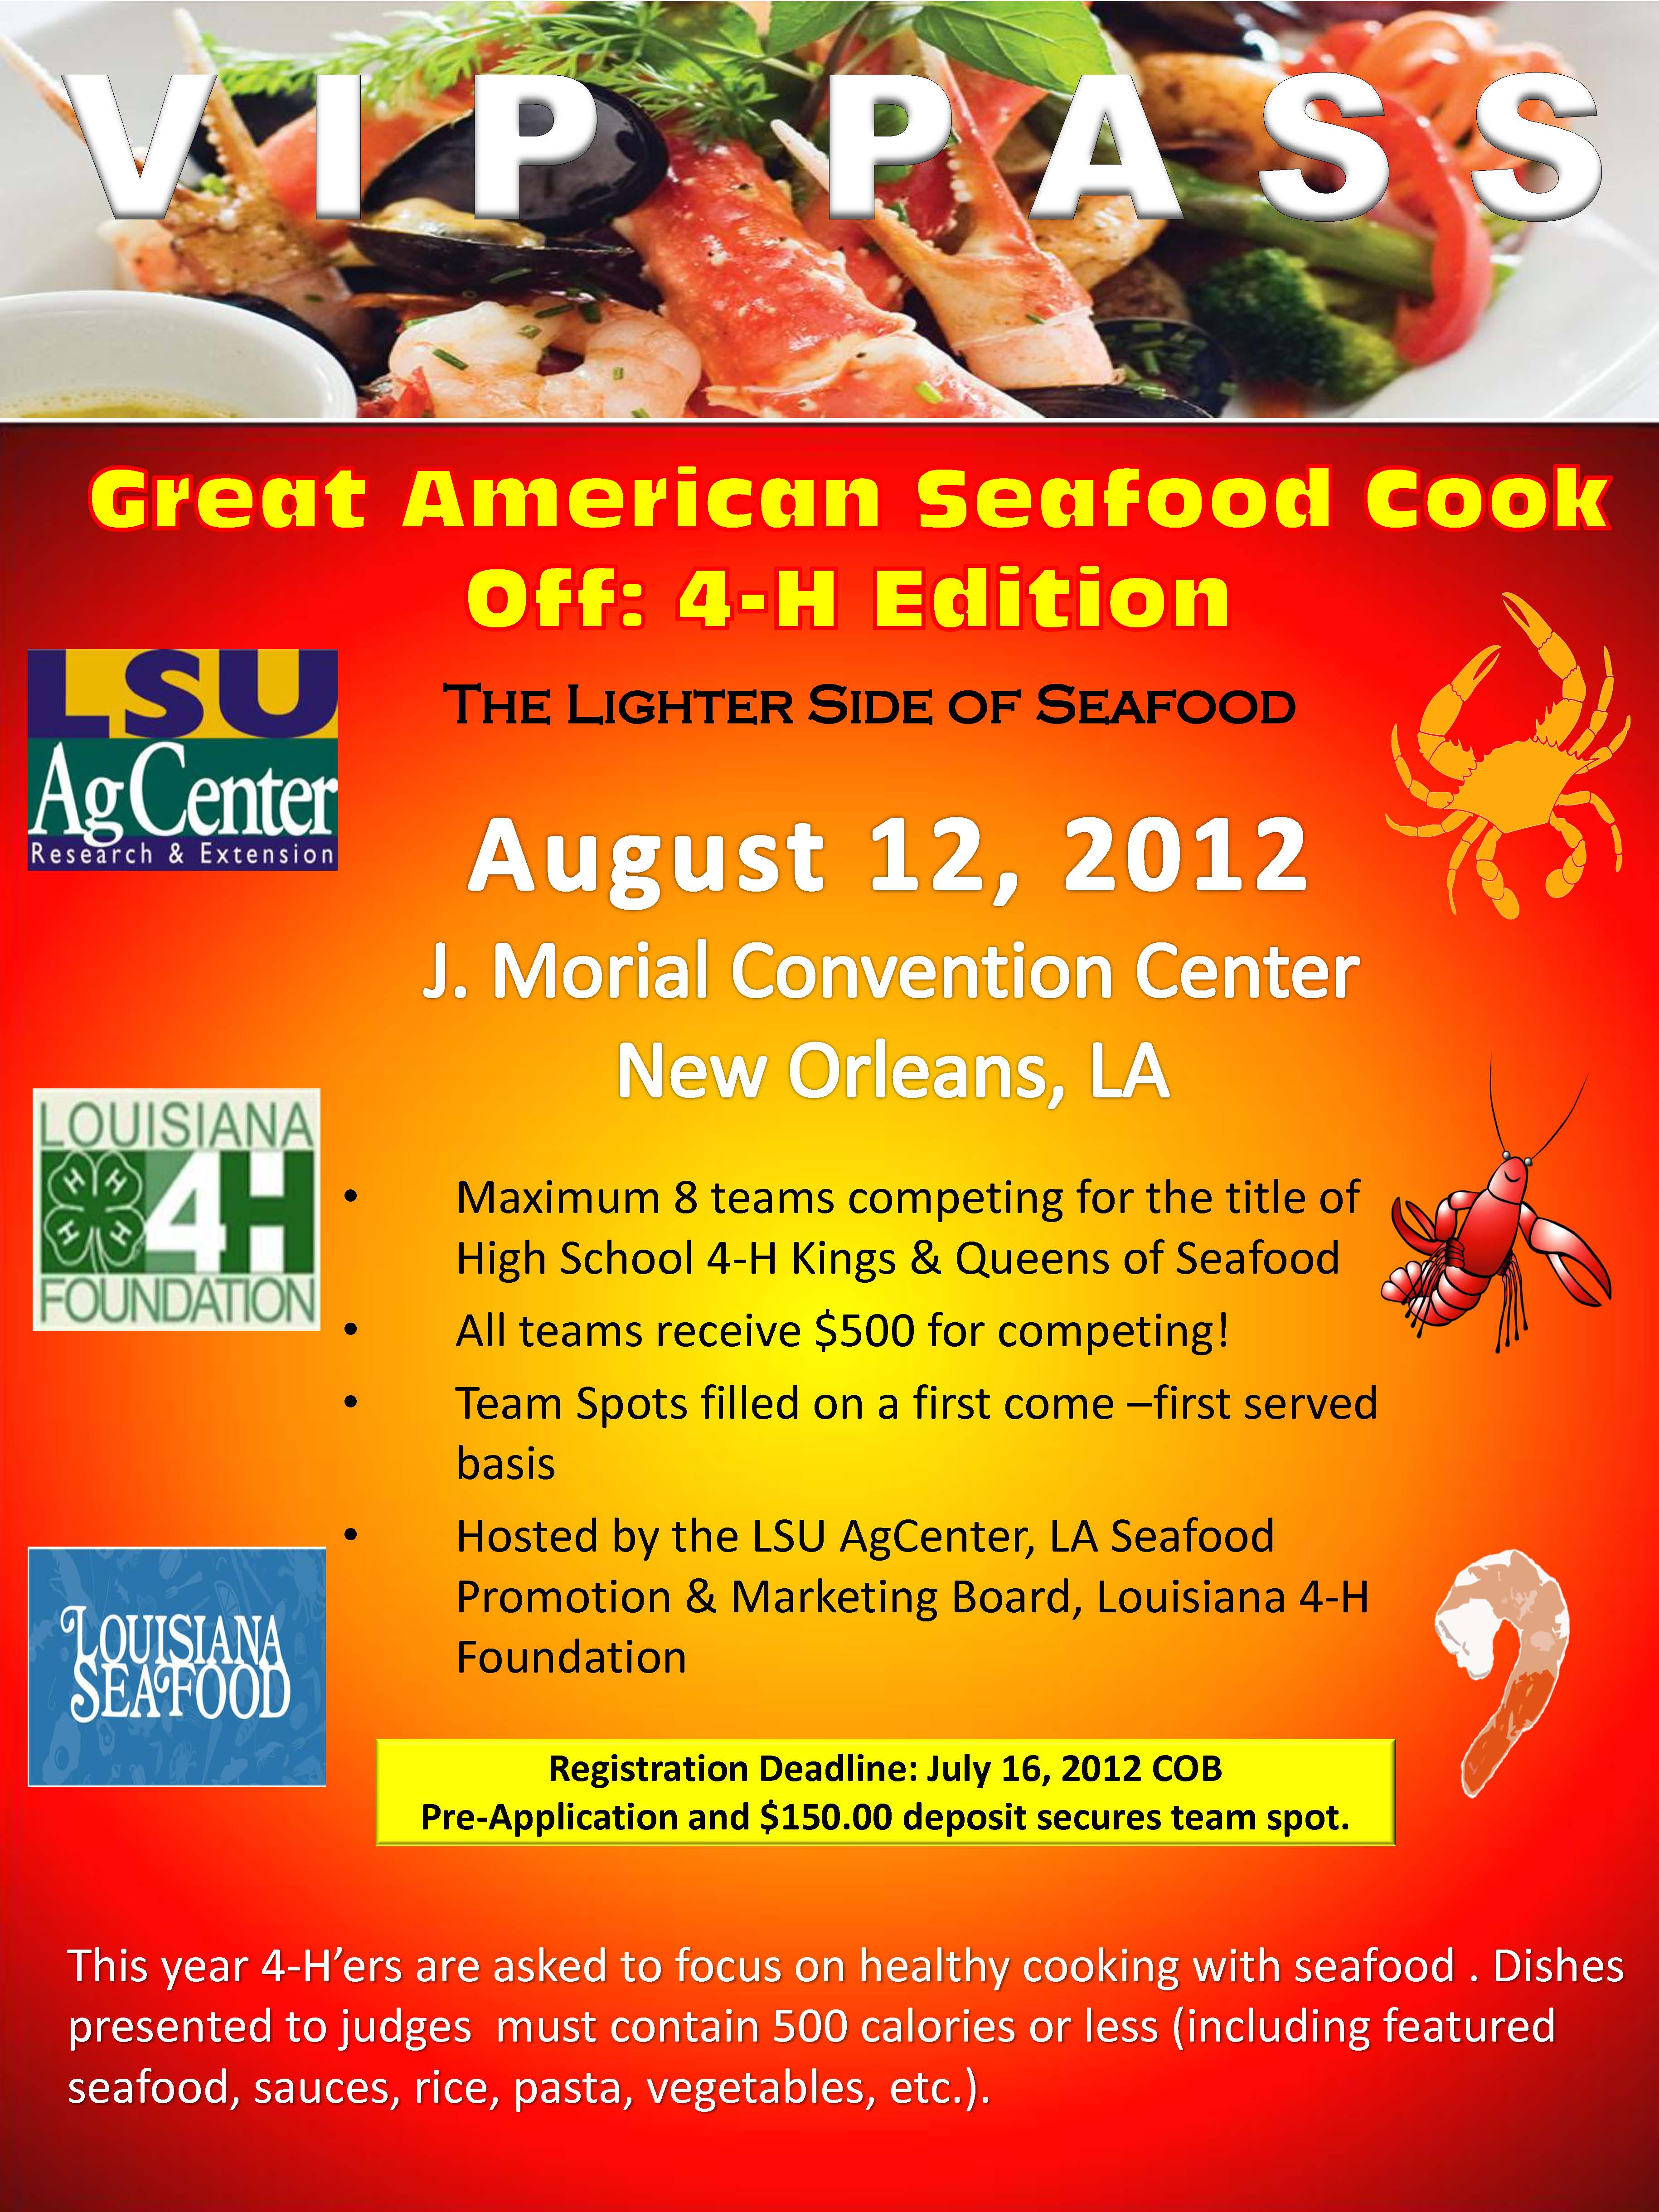 2012 Great American Seafood CooK Off: 4-H Edition